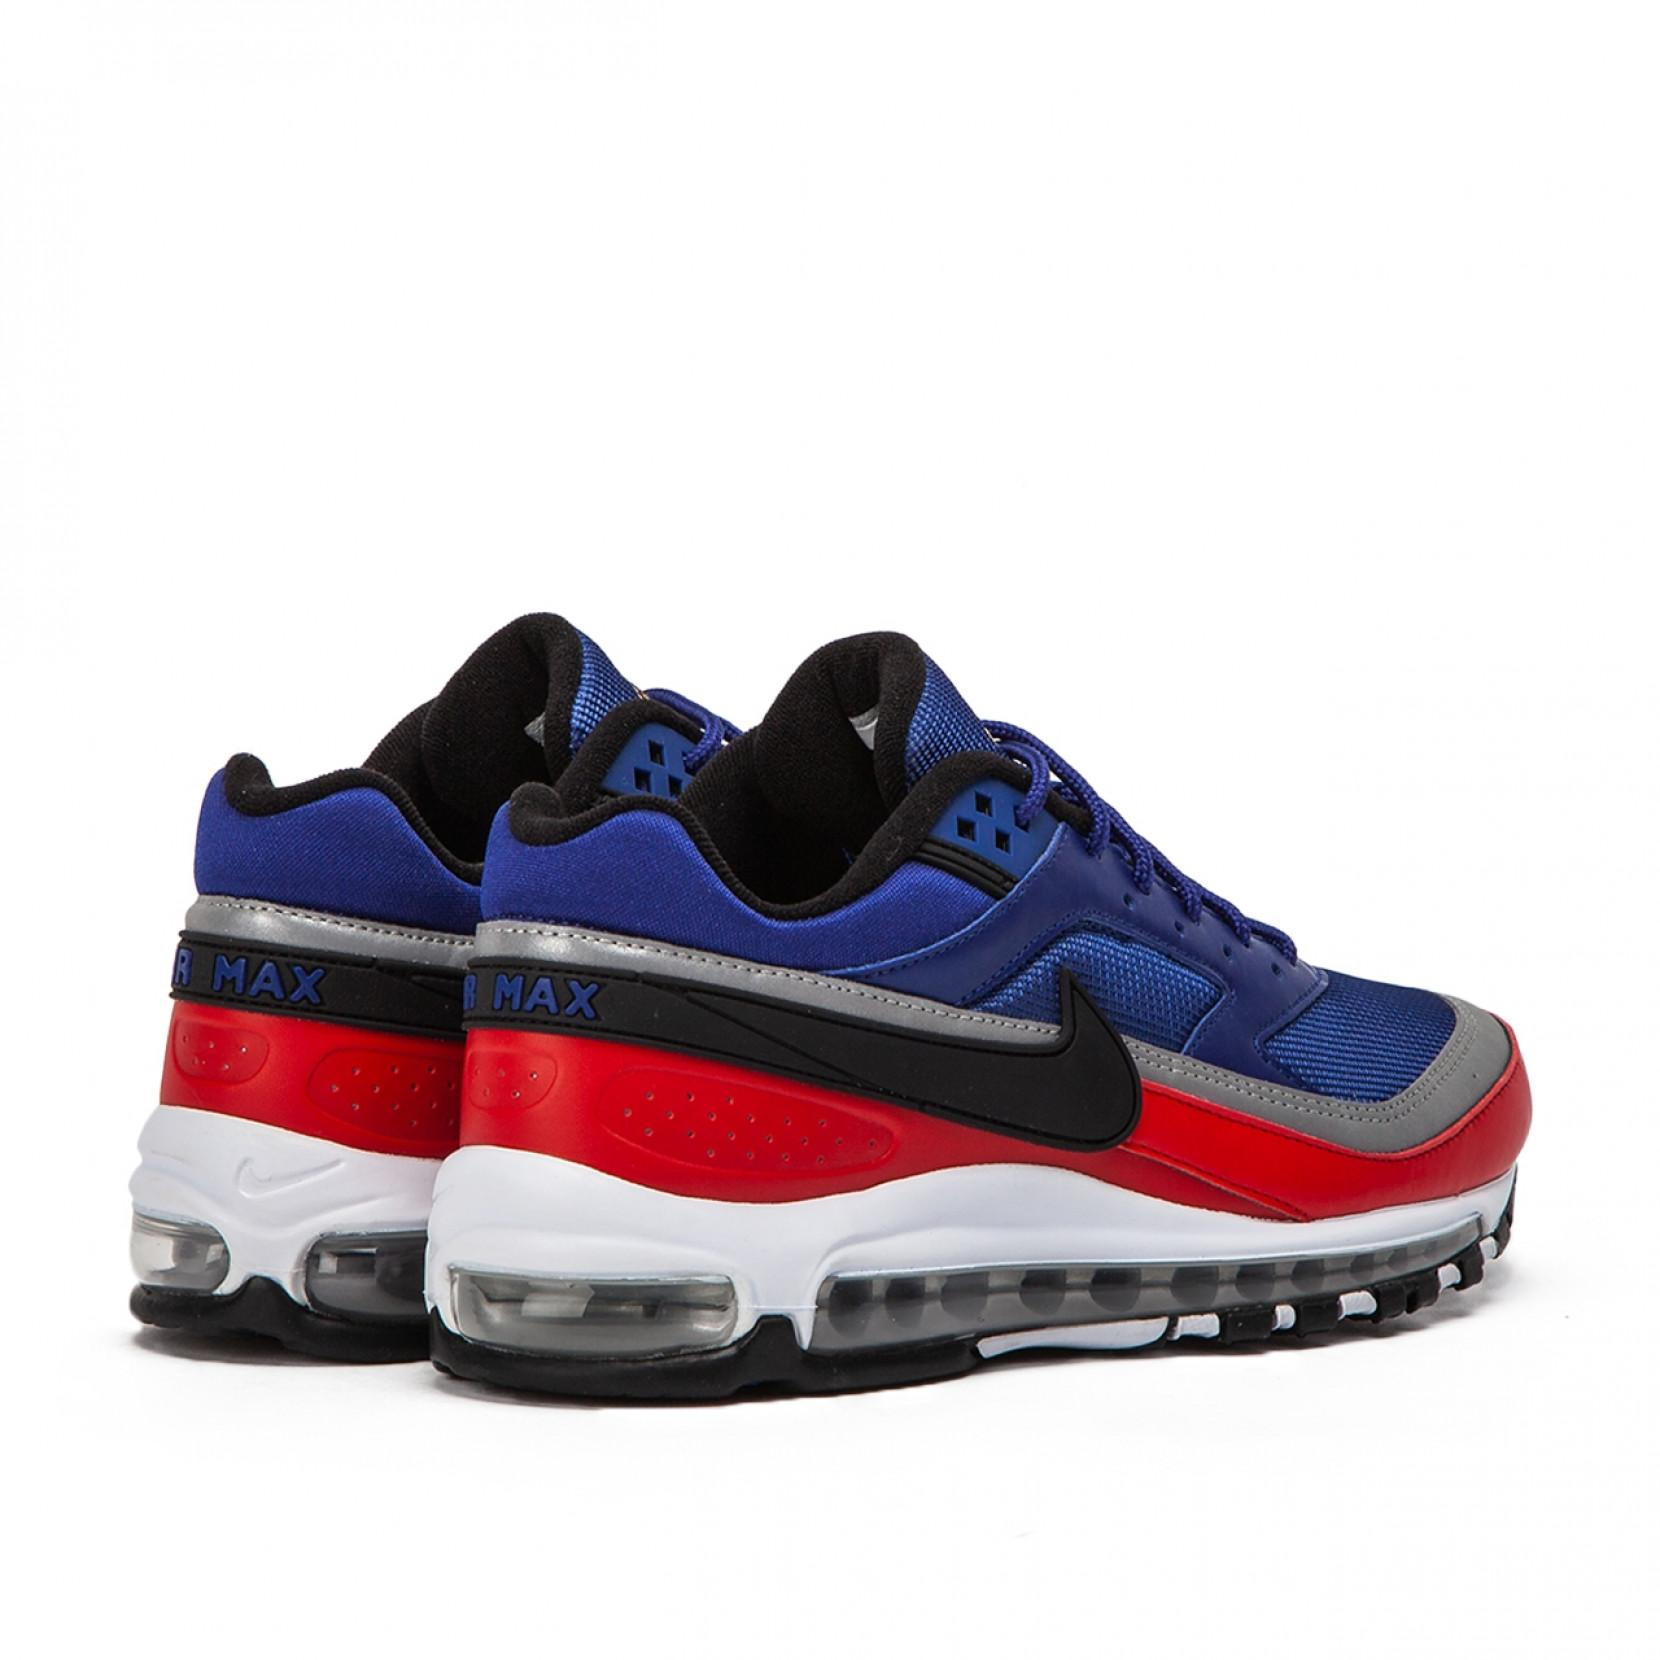 Nike Rubber Air Max 97 Bw in Blue for Men - Lyst